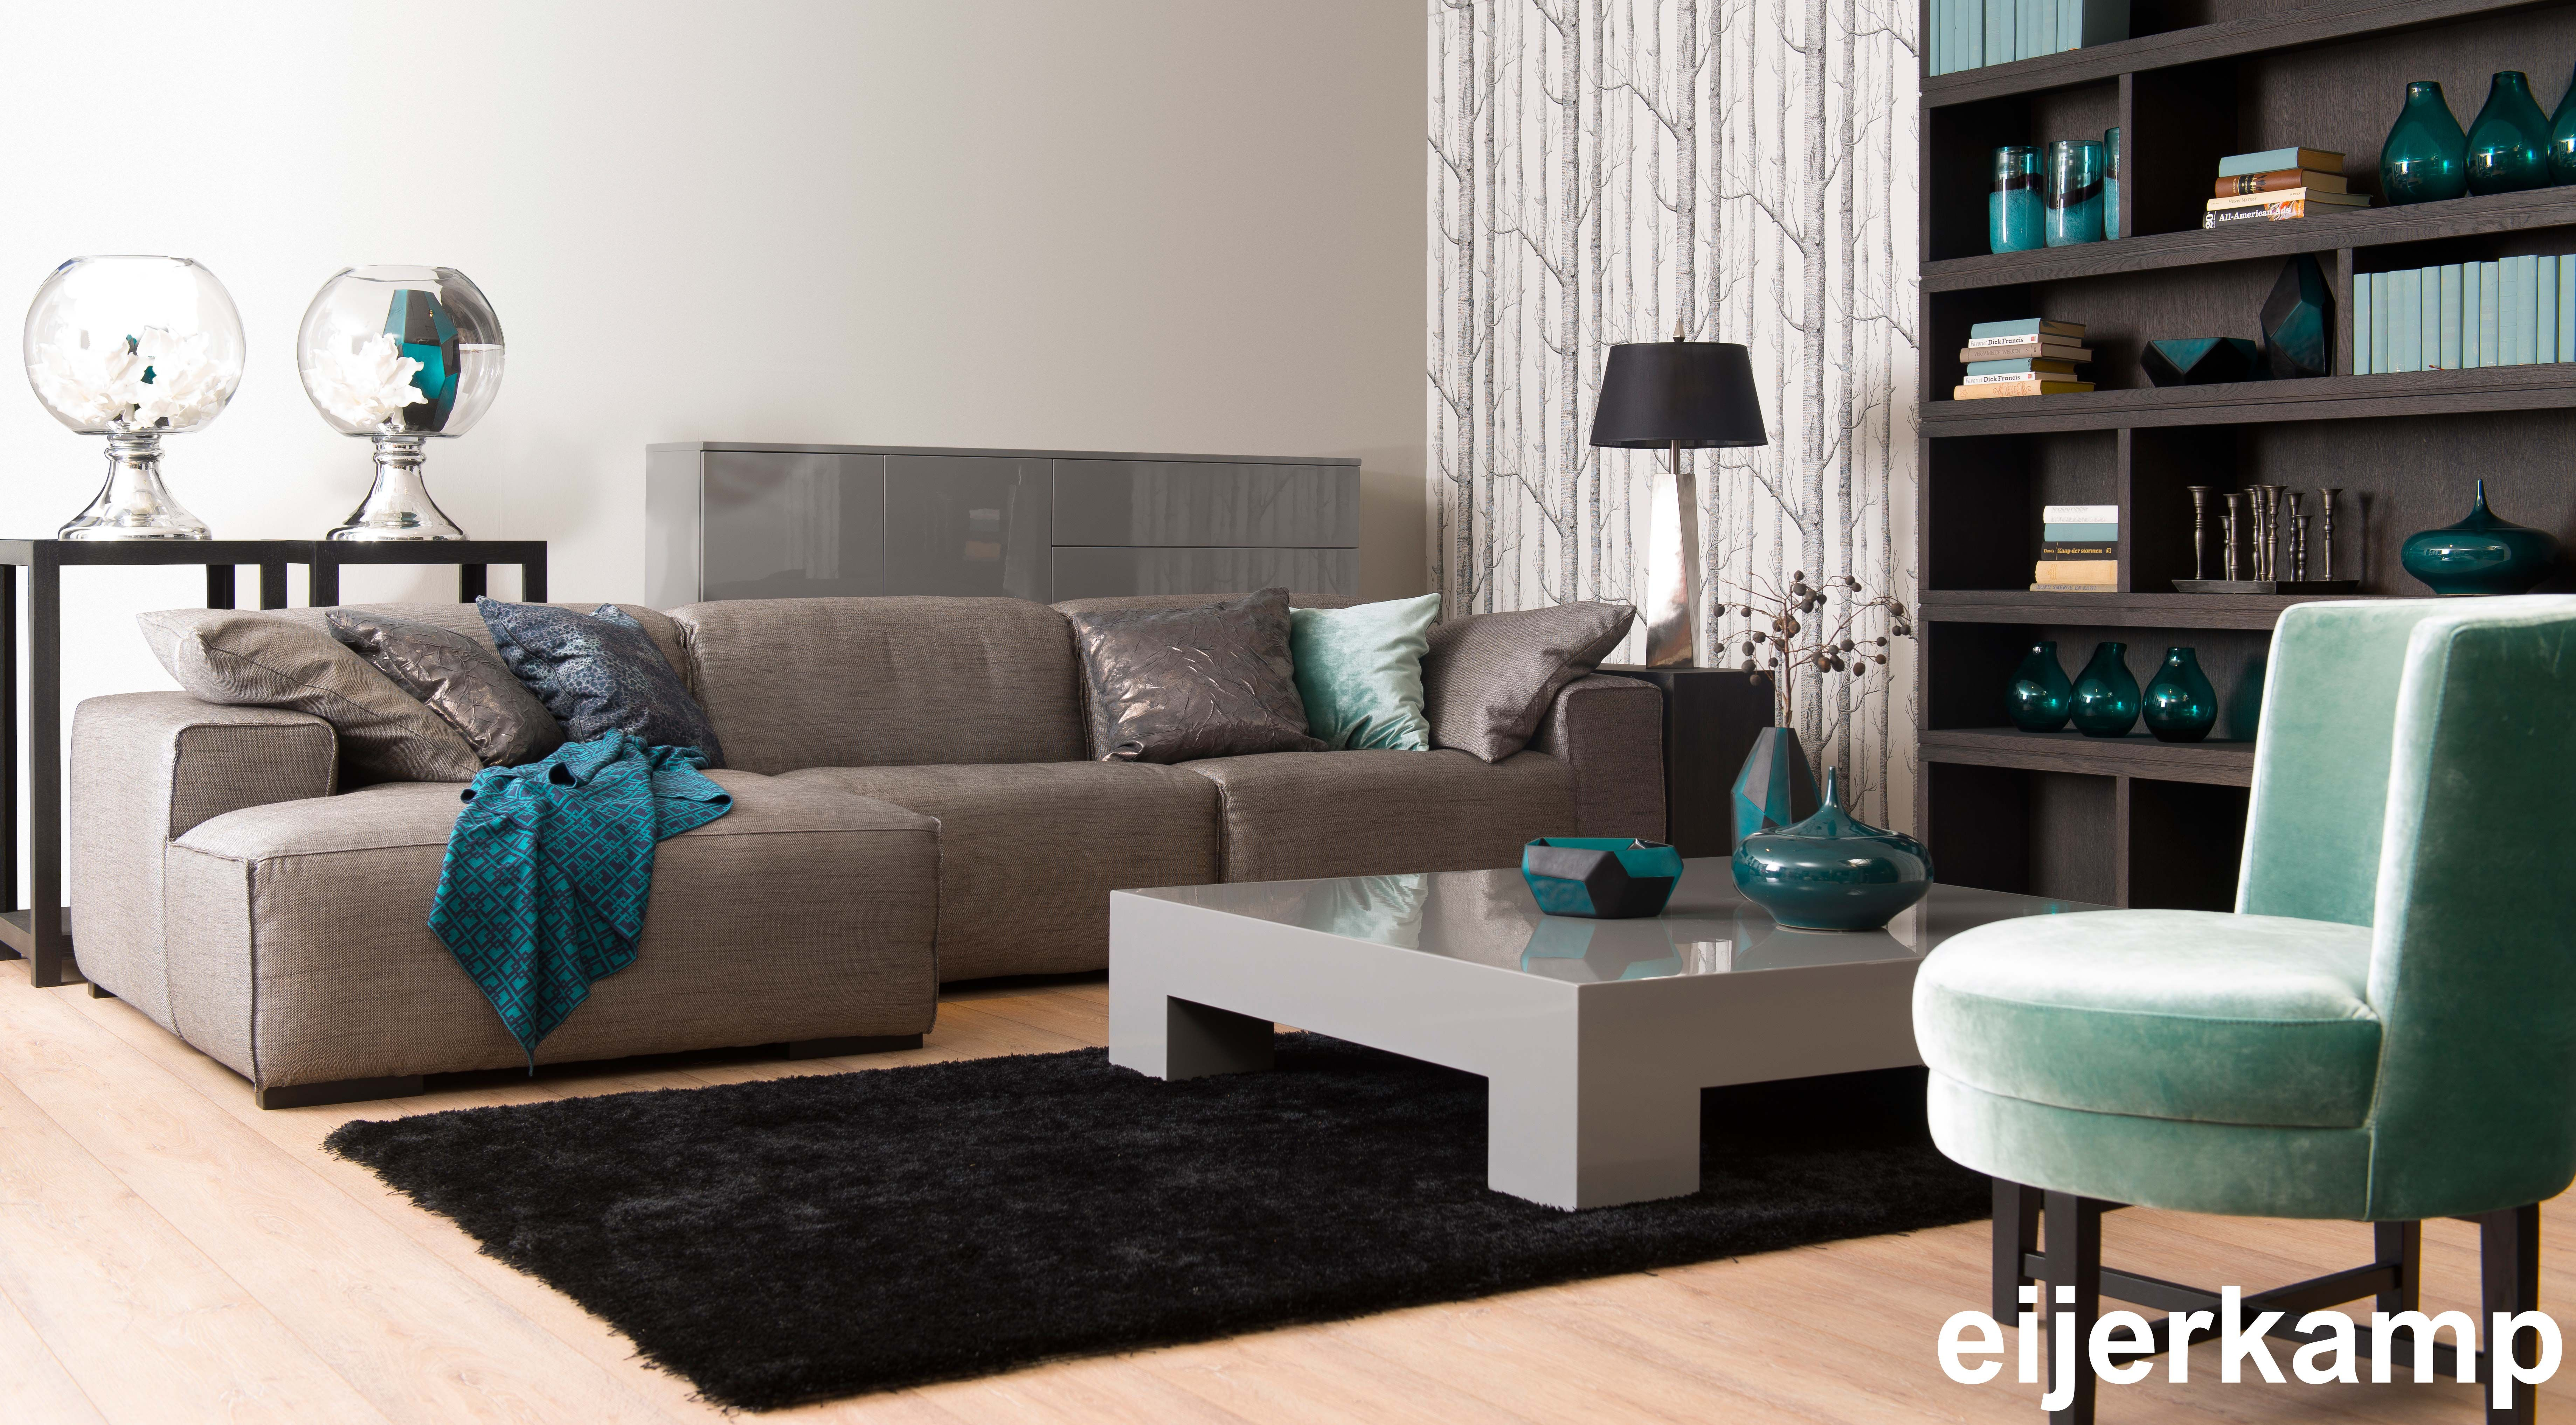 Keijserco Bij Eijerkamp Zutphen Banken Furniture Sofa